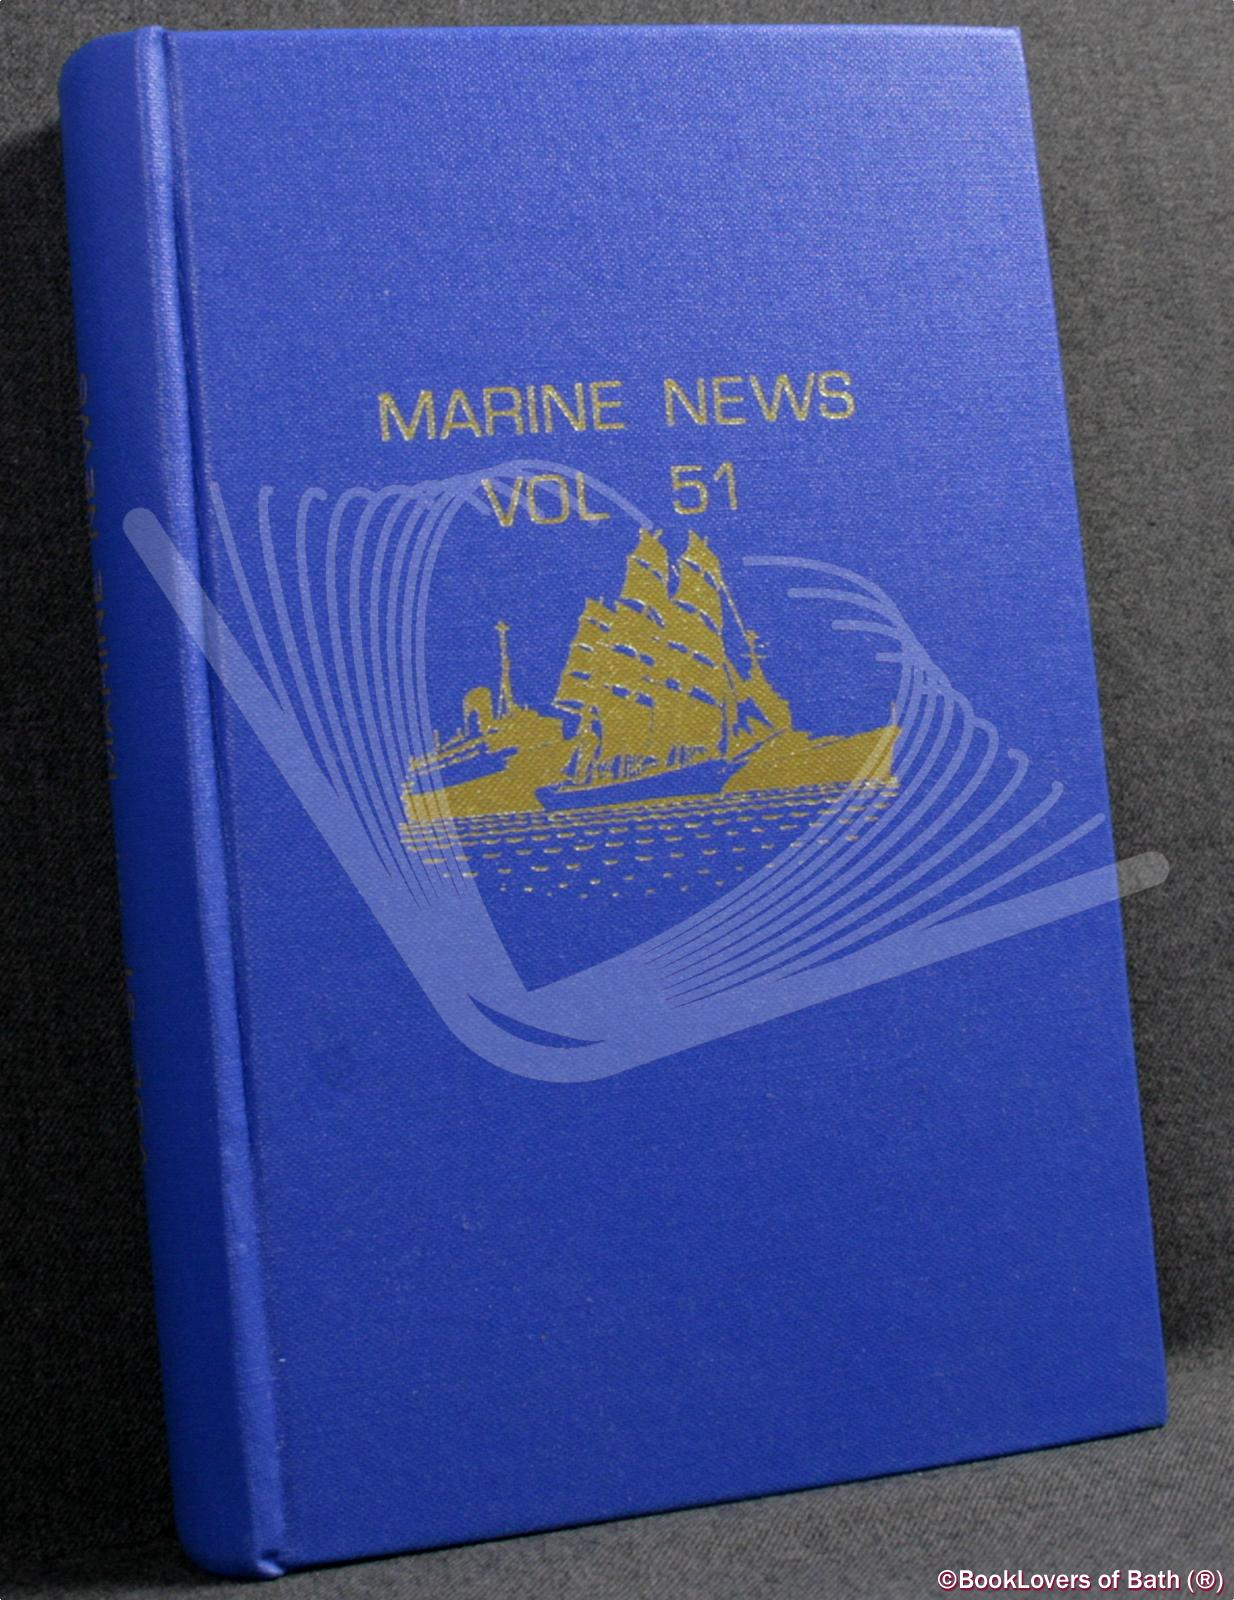 Marine News: Journal of the World Ship Society Volume 51 No. 1 January 1997 - Volume 51 No. 12 December 1997 - Edited By Kevin O'Donoghue & Roy Fenton